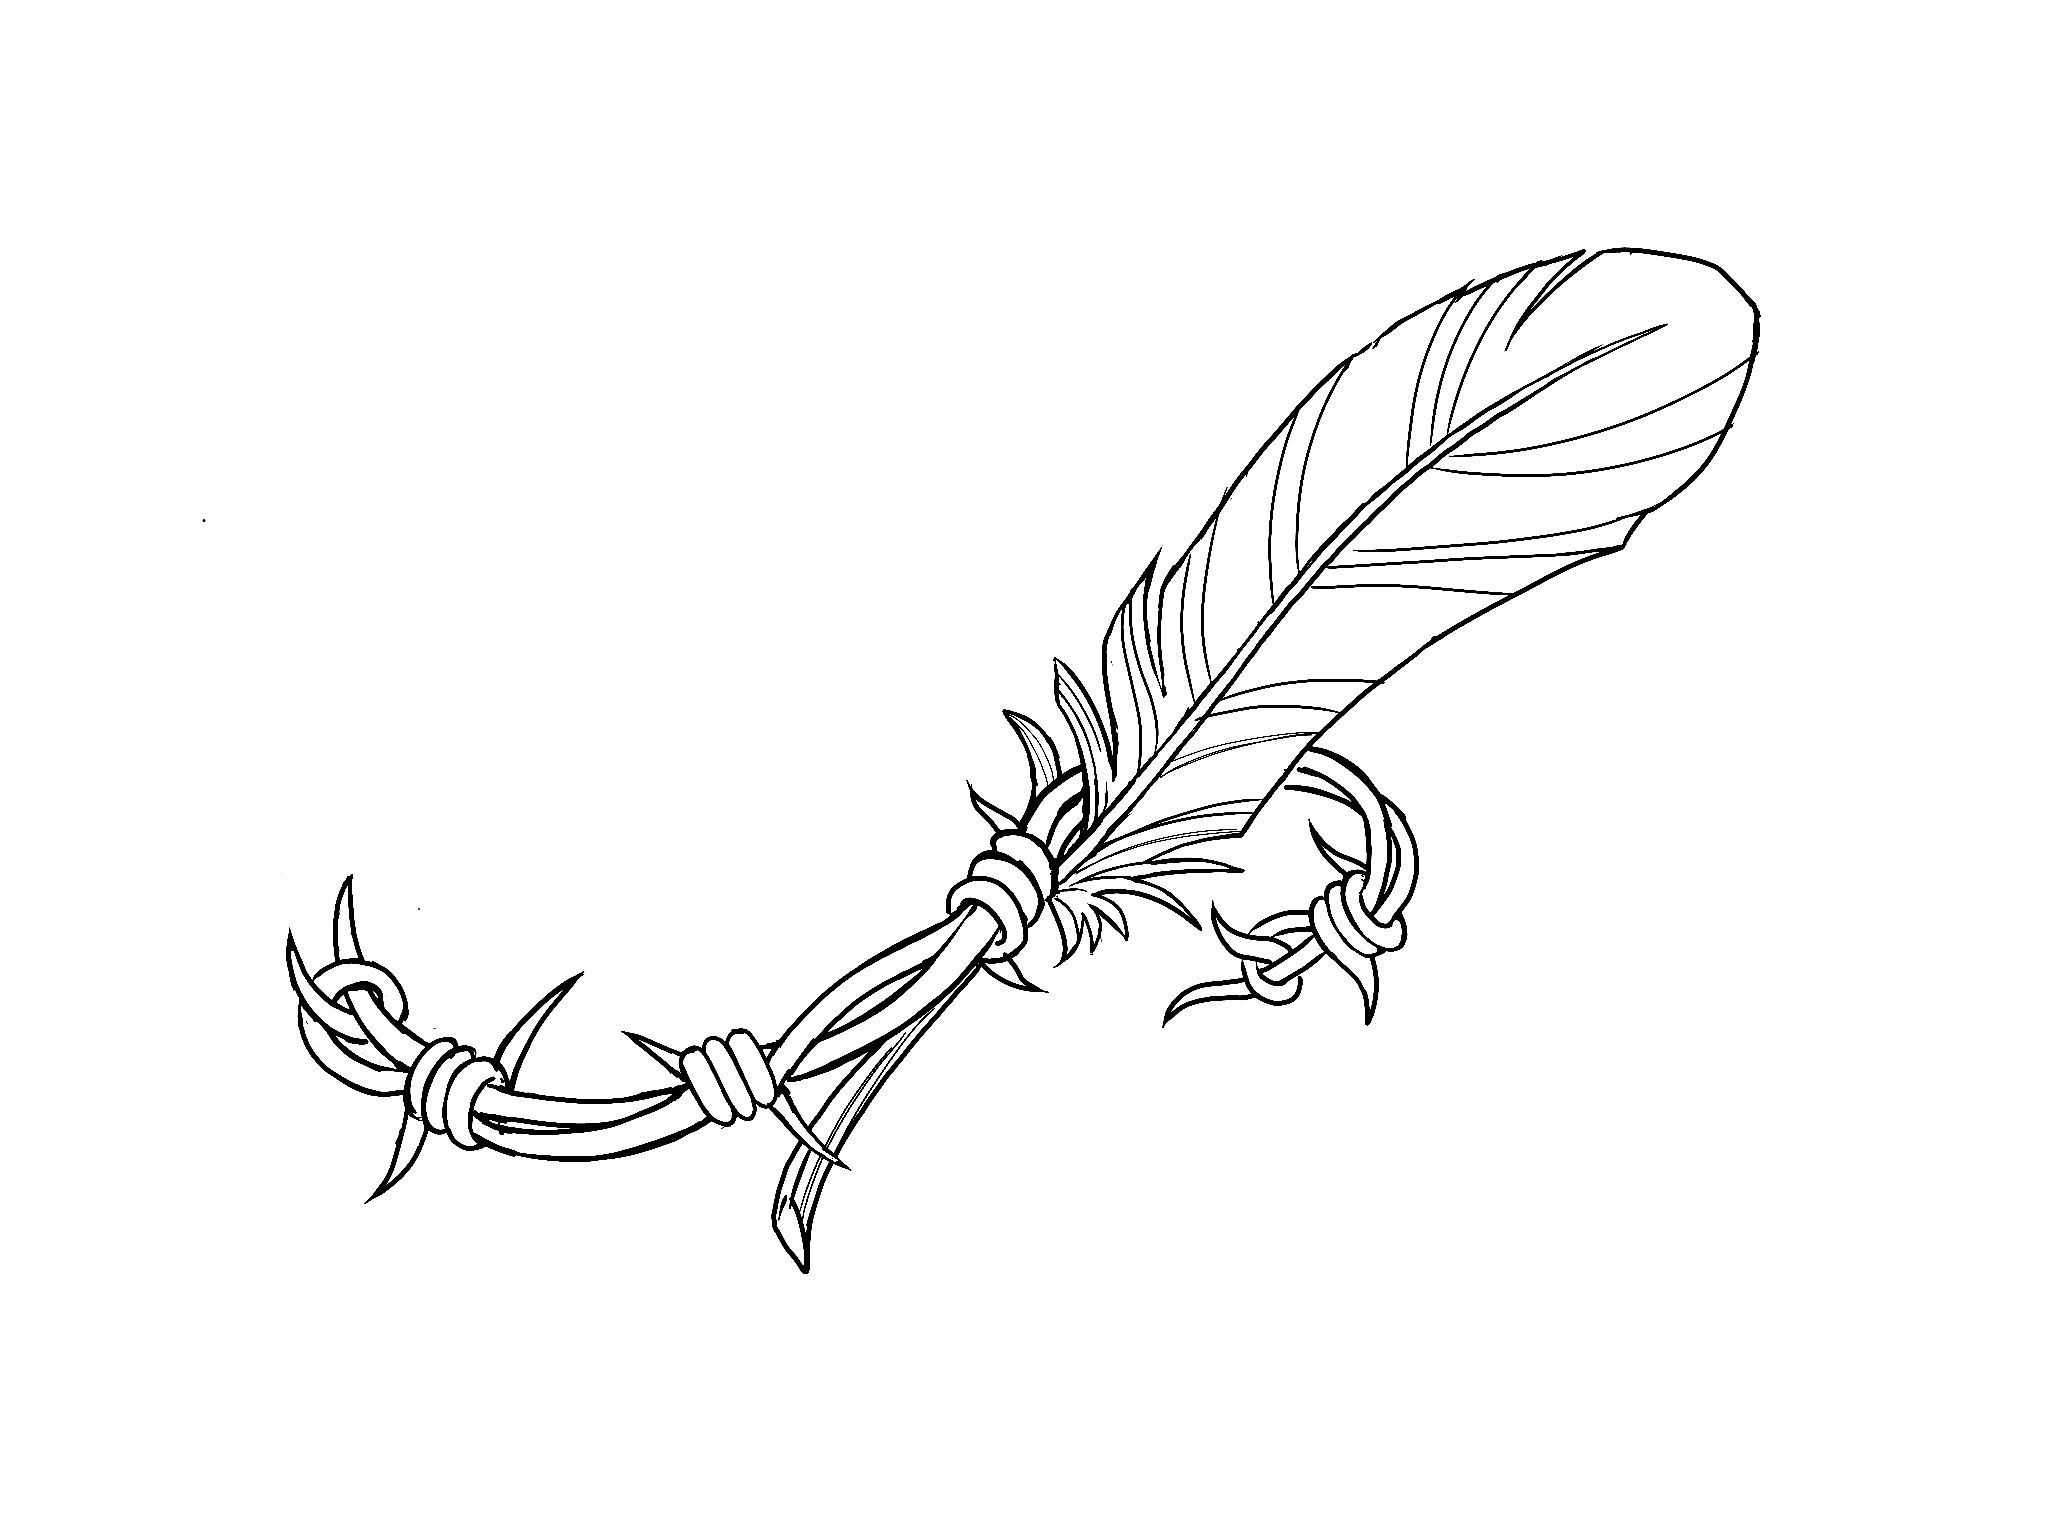 Barbed wire feather tattoo designed by Kim White free to use. | Tat ...